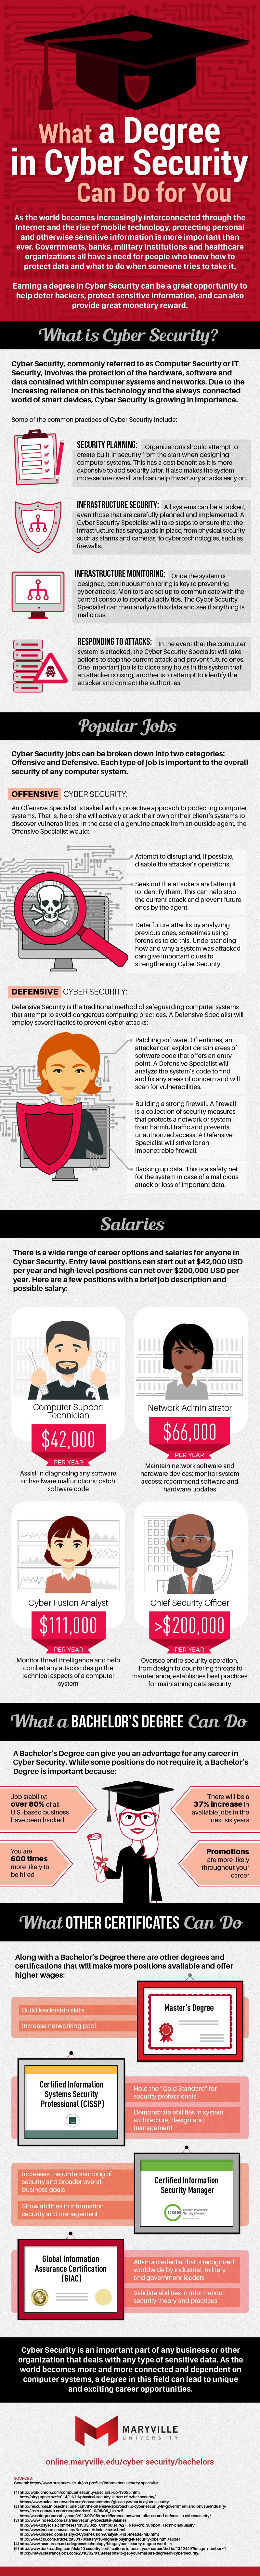 10 Side Jobs with Top Pay - Infographic